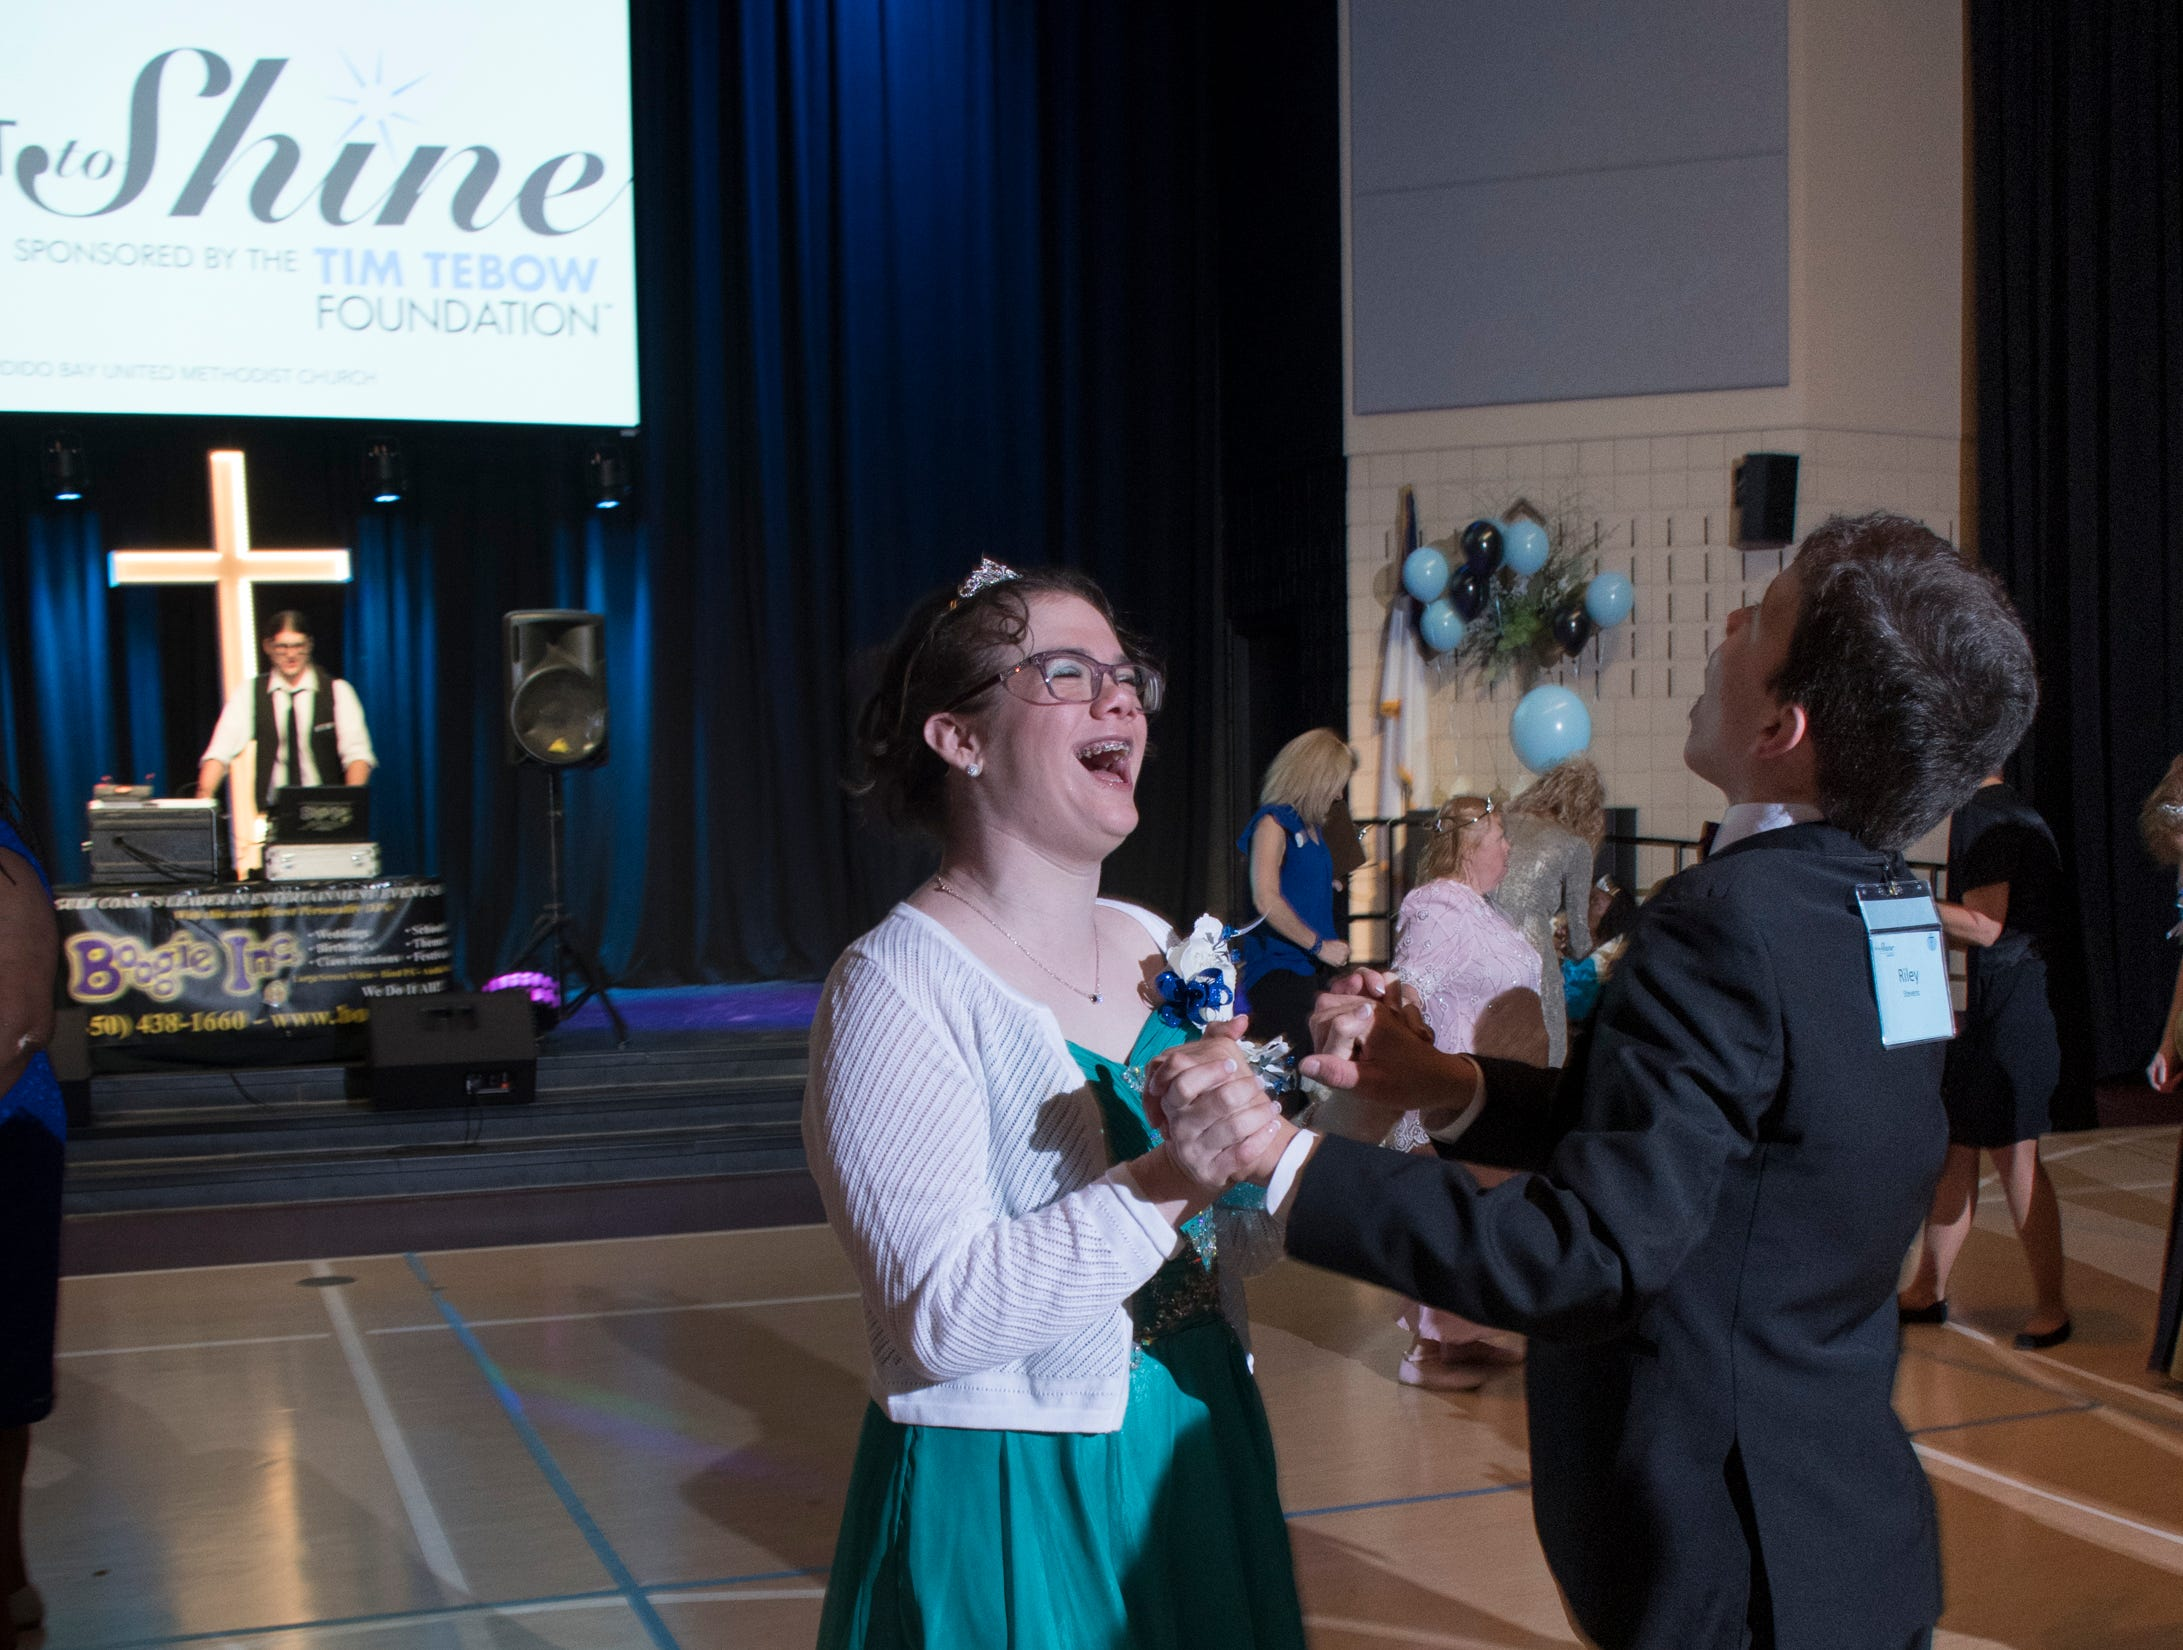 Haylee Andrews is all smiles as she dances with Riley Stevens during the Night to Shine prom for people with special needs sponsored by the Tim Tebow Foundation at Perdido Bay United Methodist Church in Pensacola on Friday, February 8, 2019.